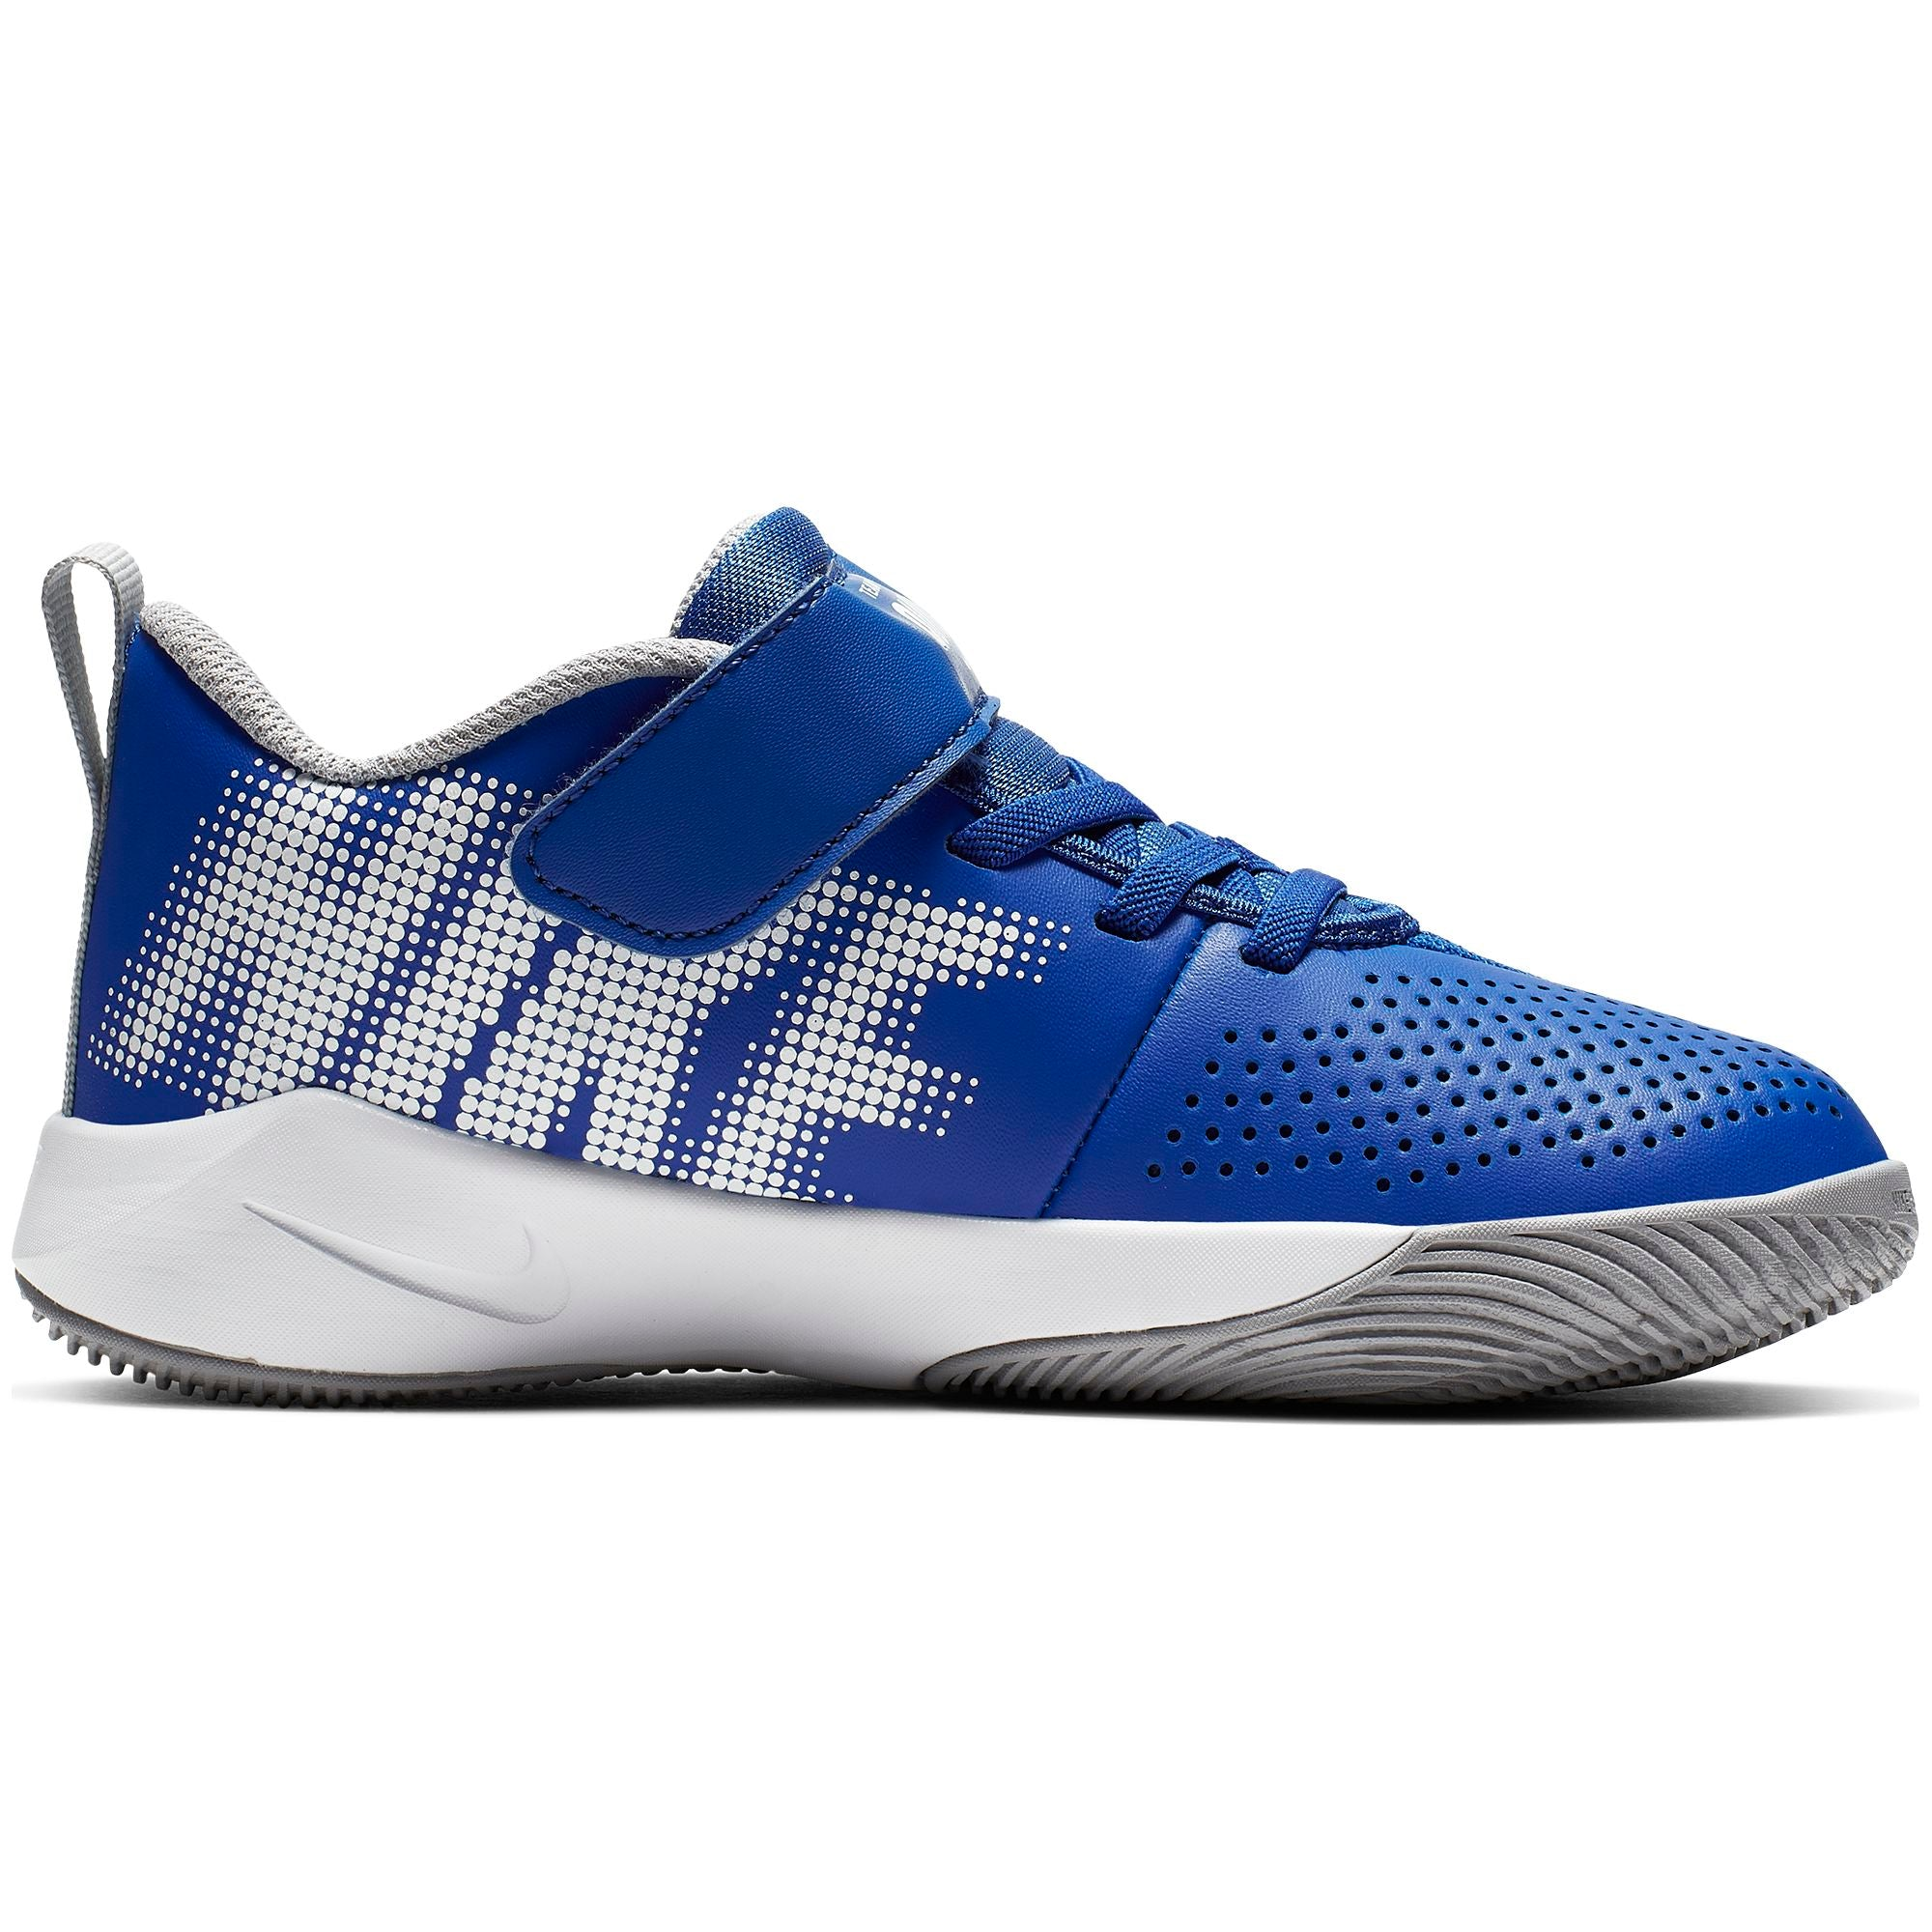 Nike Kids Team Hustle Quick 2 Basketball Shoe - Game Royal/White/Wolf Grey